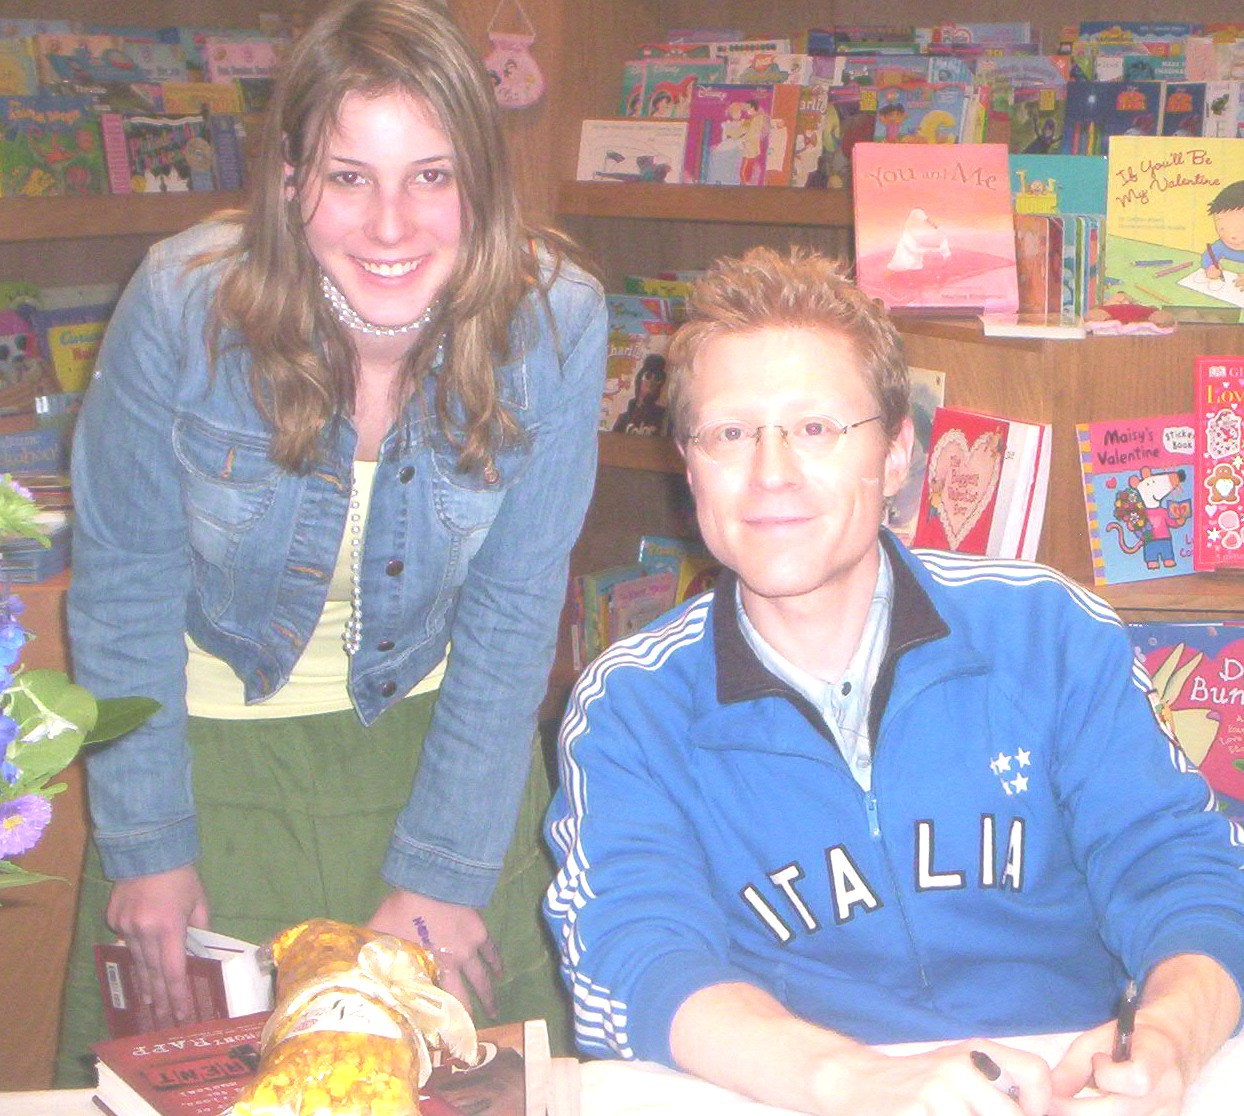 me and anthony rapp   notice the popcorn that like in everyones pics   and its from me!